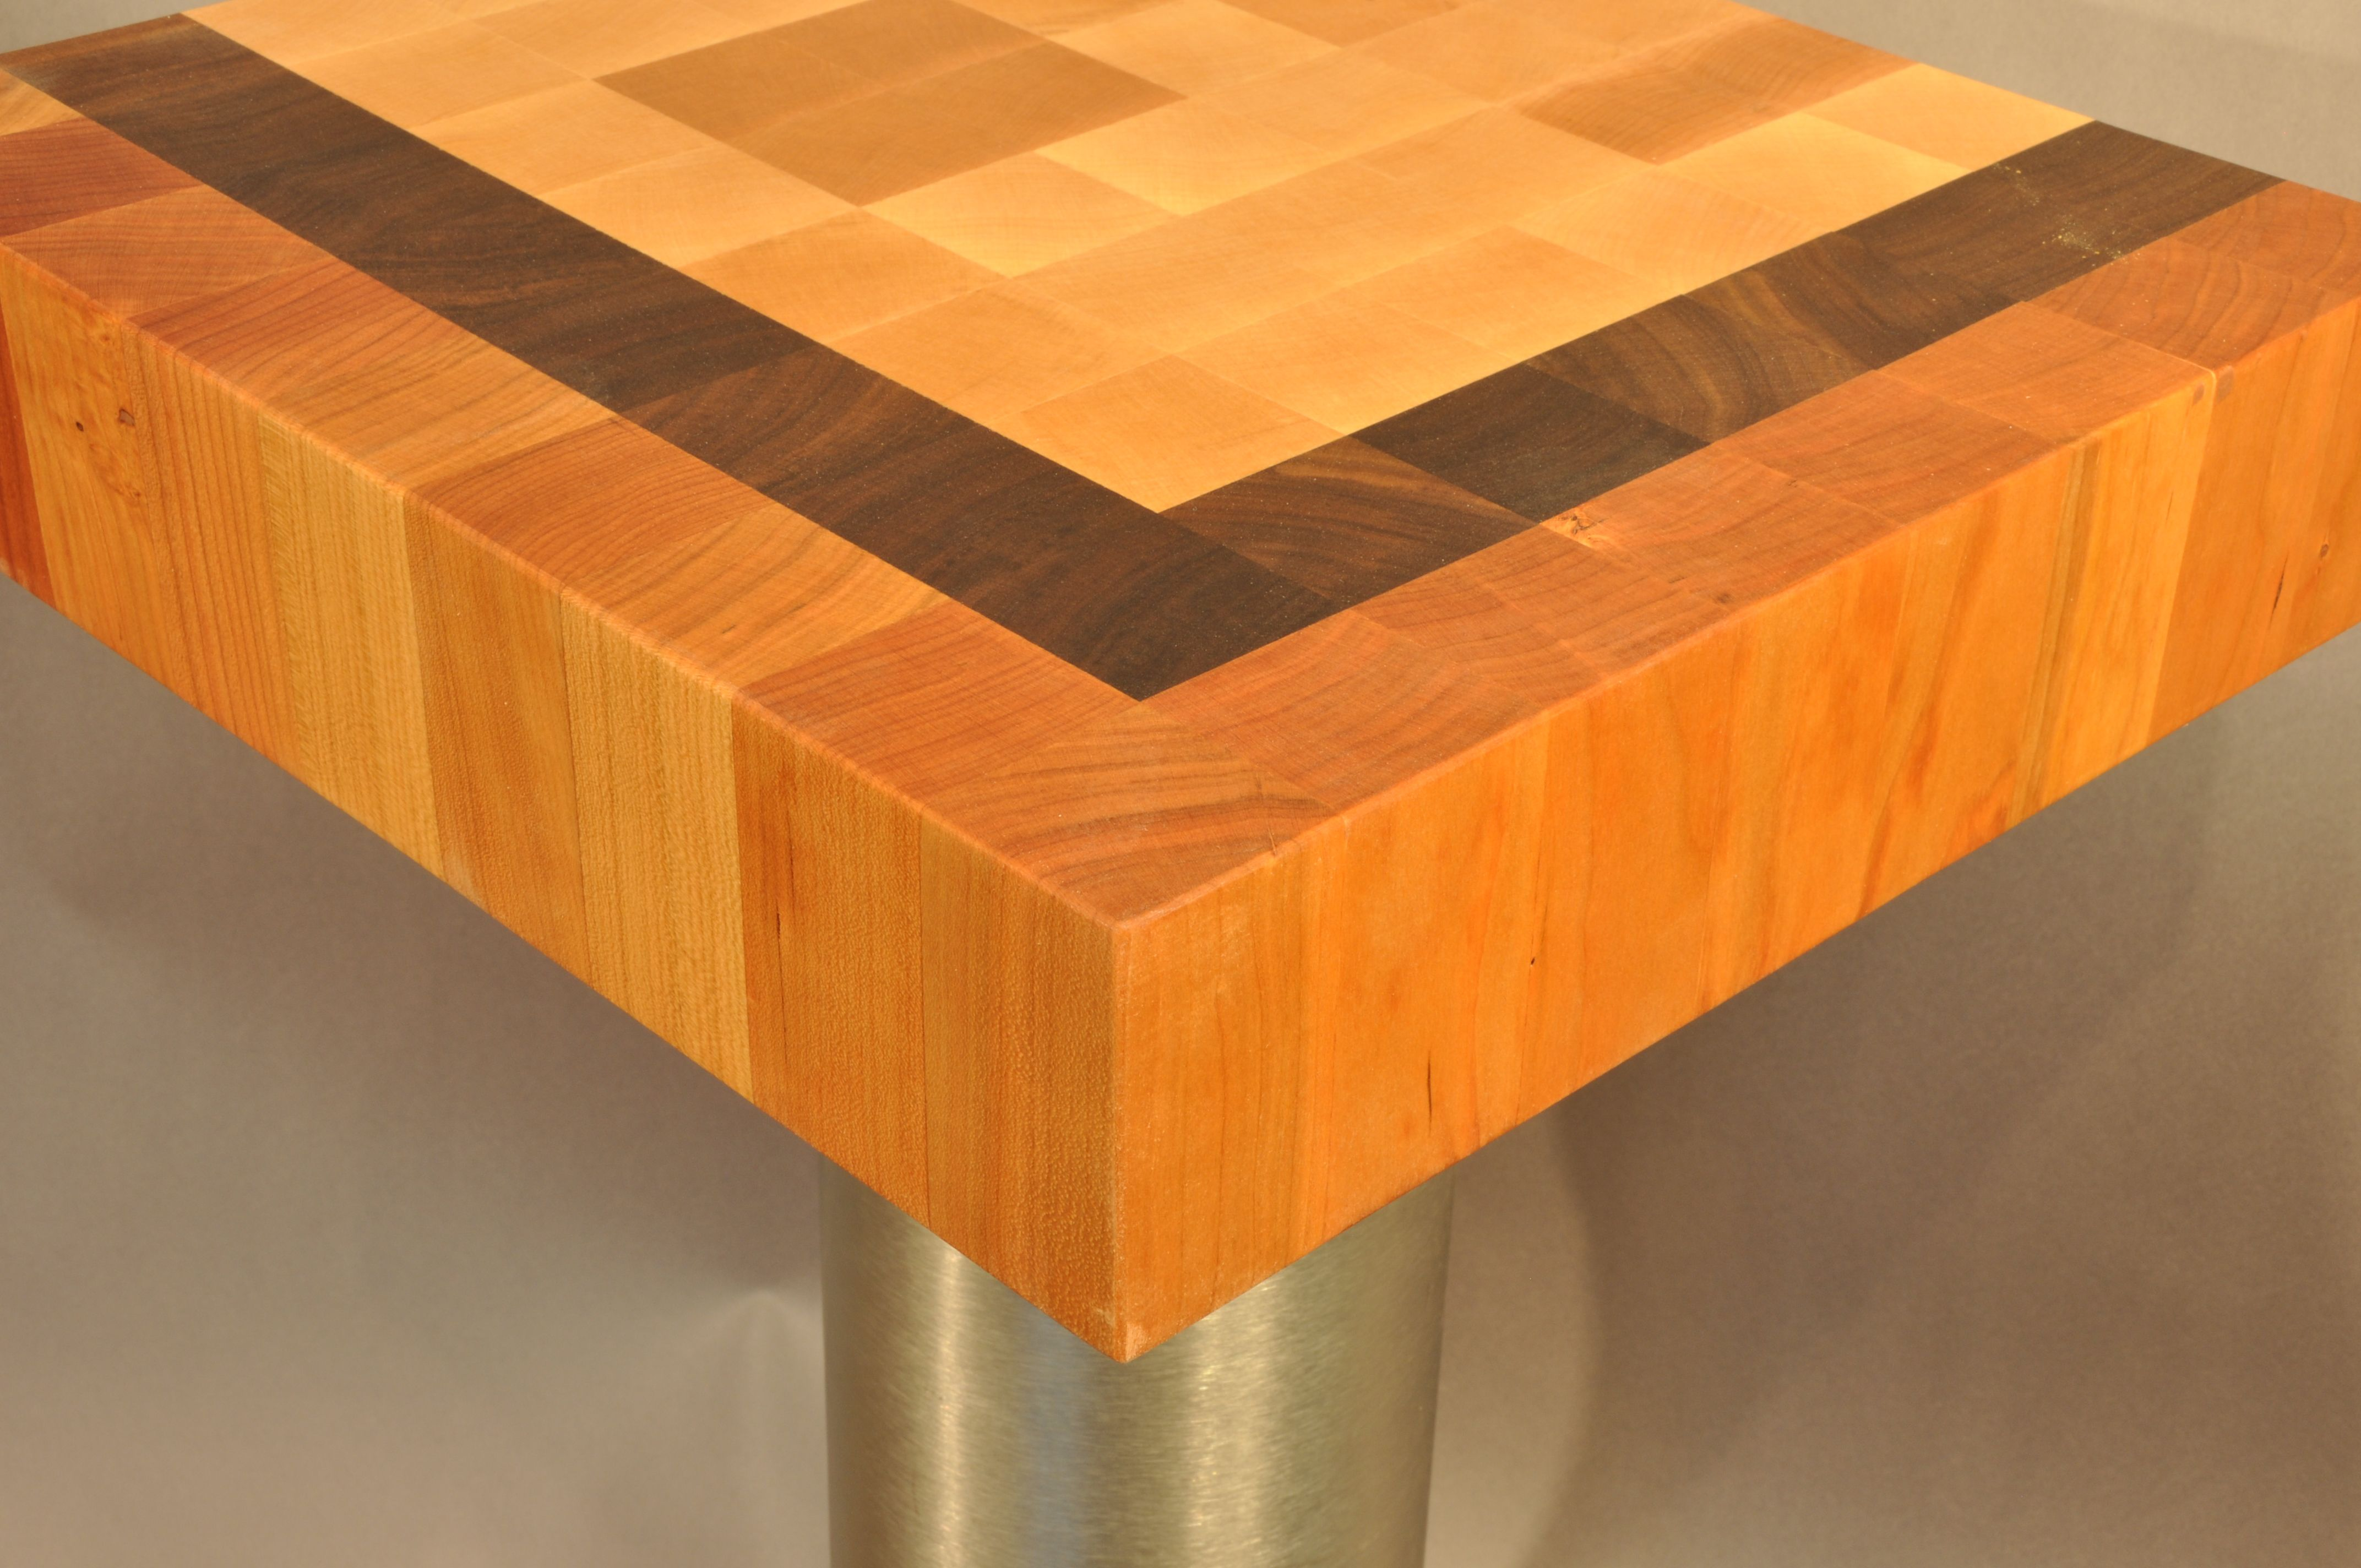 Patterned End Grain Wood Countertops Wood Countertops